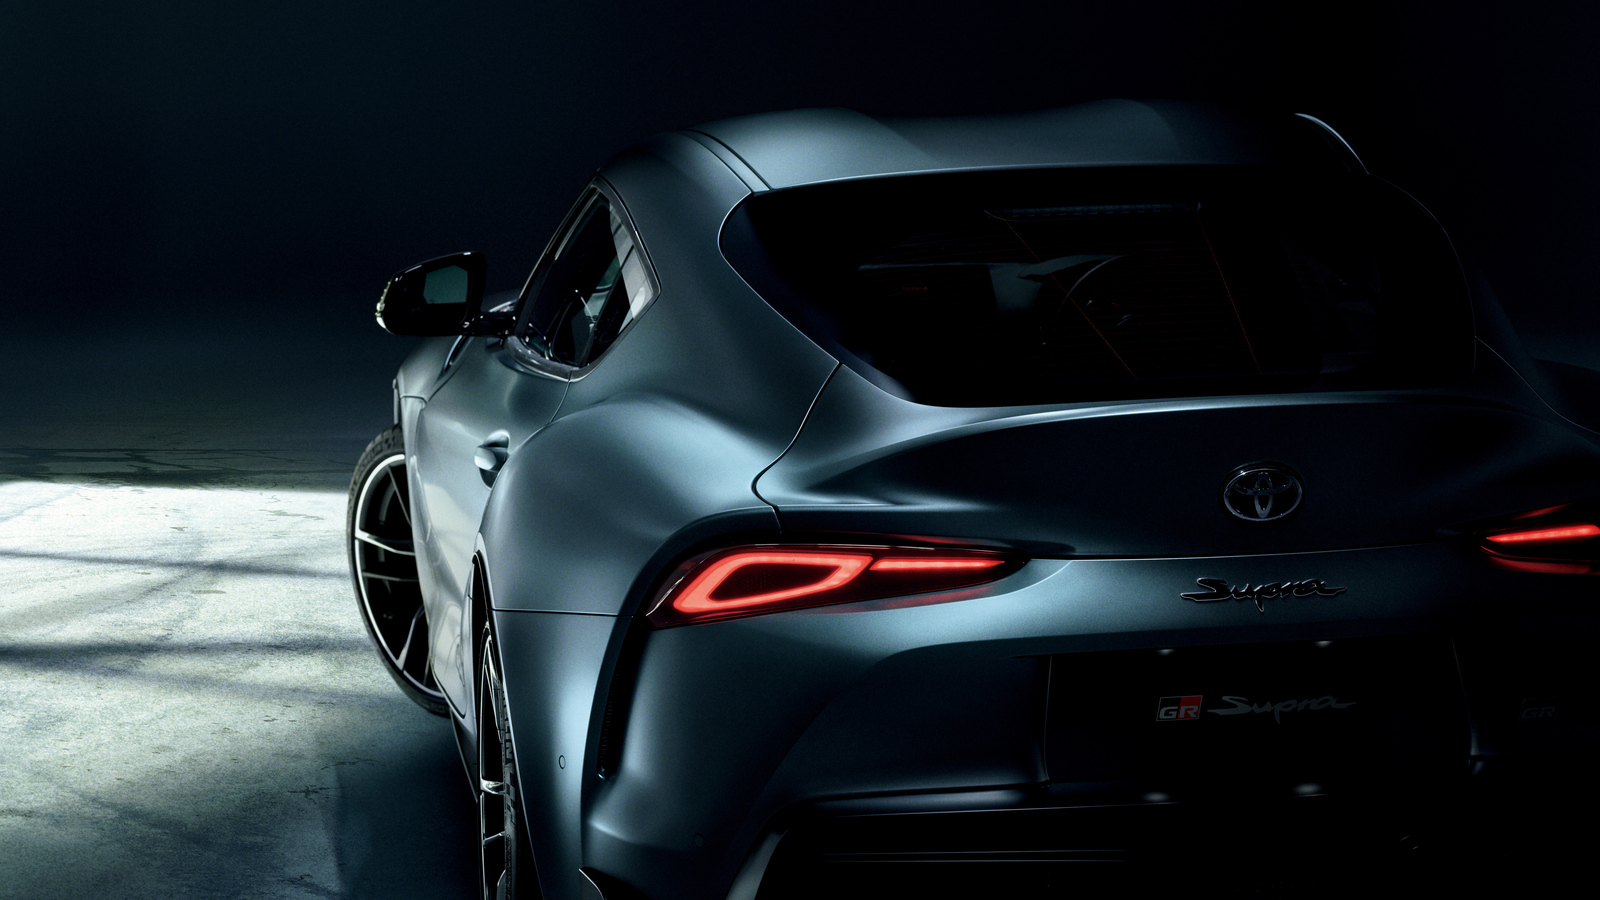 toyota-gr-supra-2019-rear-cr.jpg